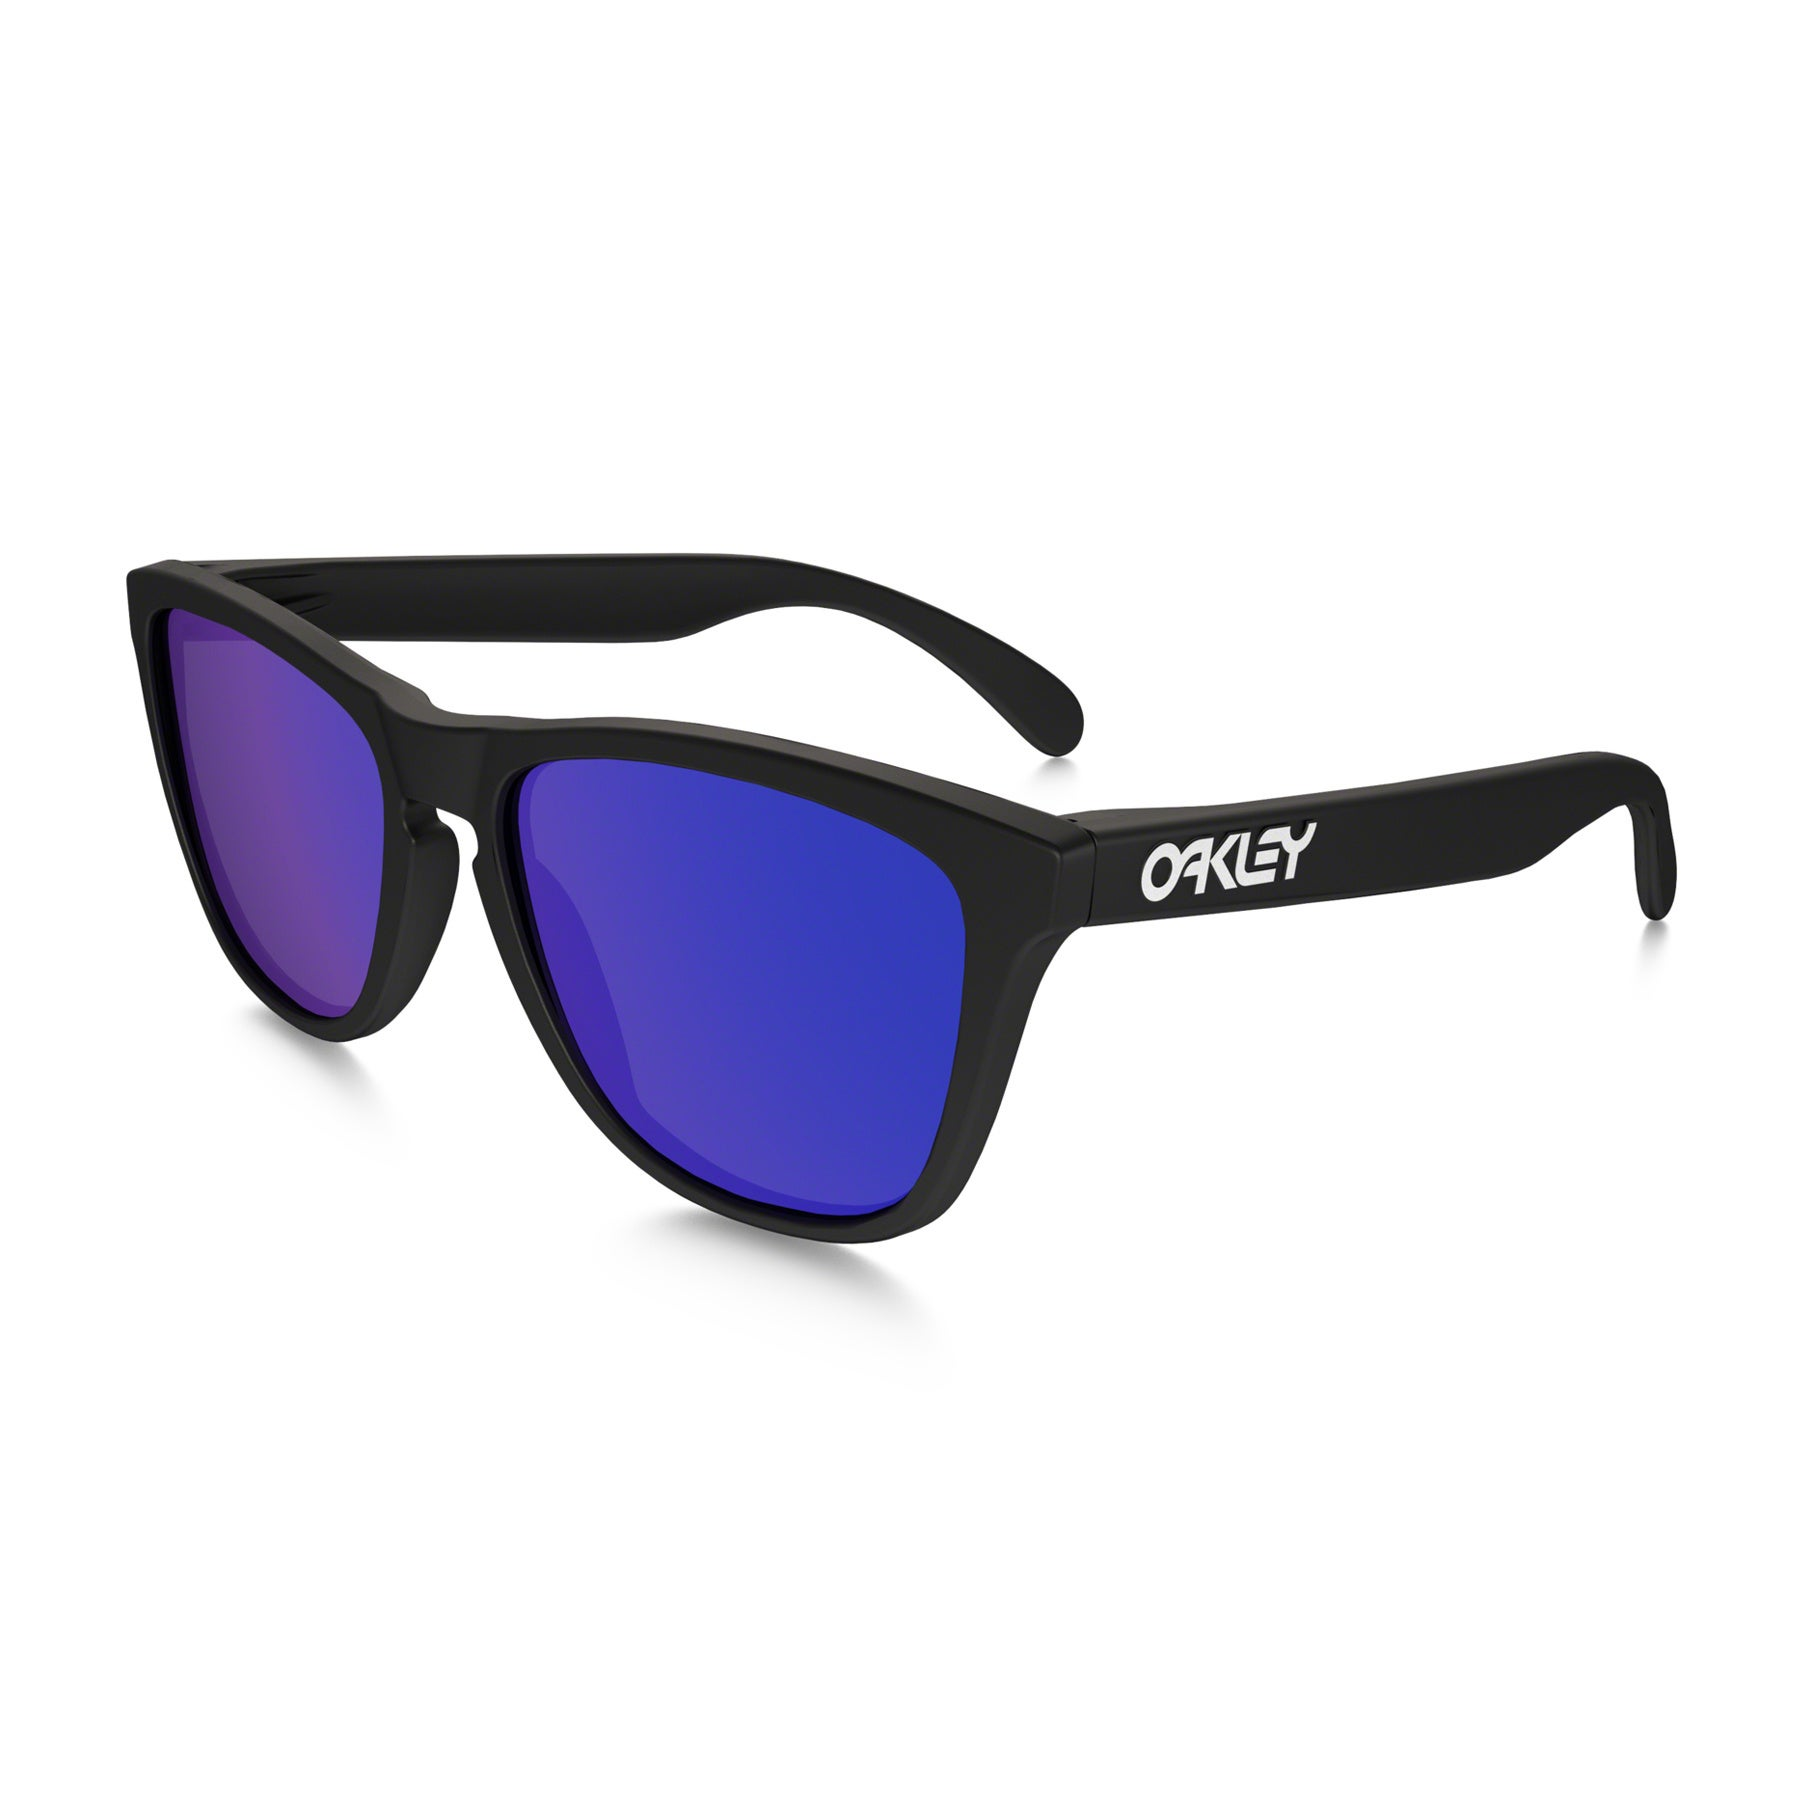 c1cbc017daa61 Oakley Frogskins Sunglasses available from Surfdome